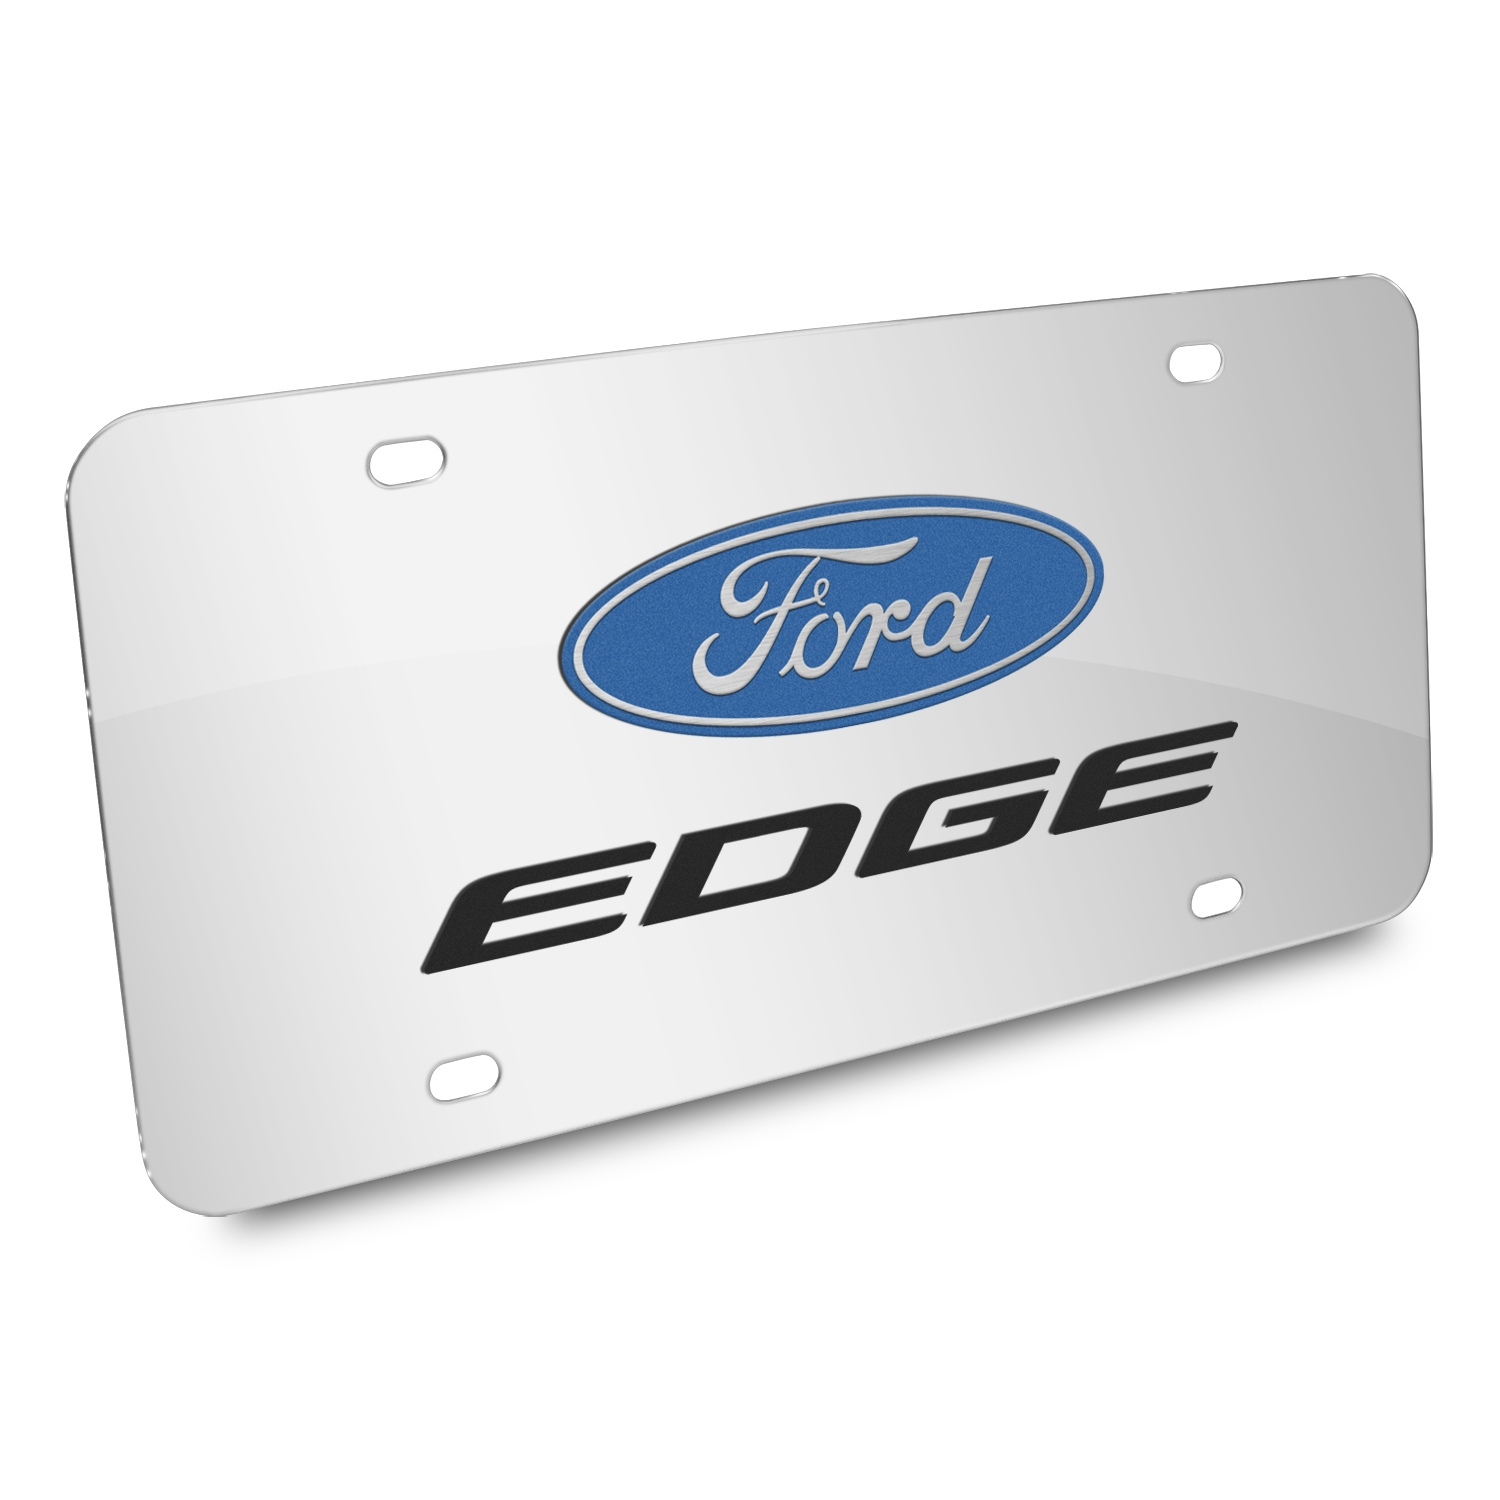 Ford Edge 3D Dual Logo Mirror Chrome Stainless Steel License Plate